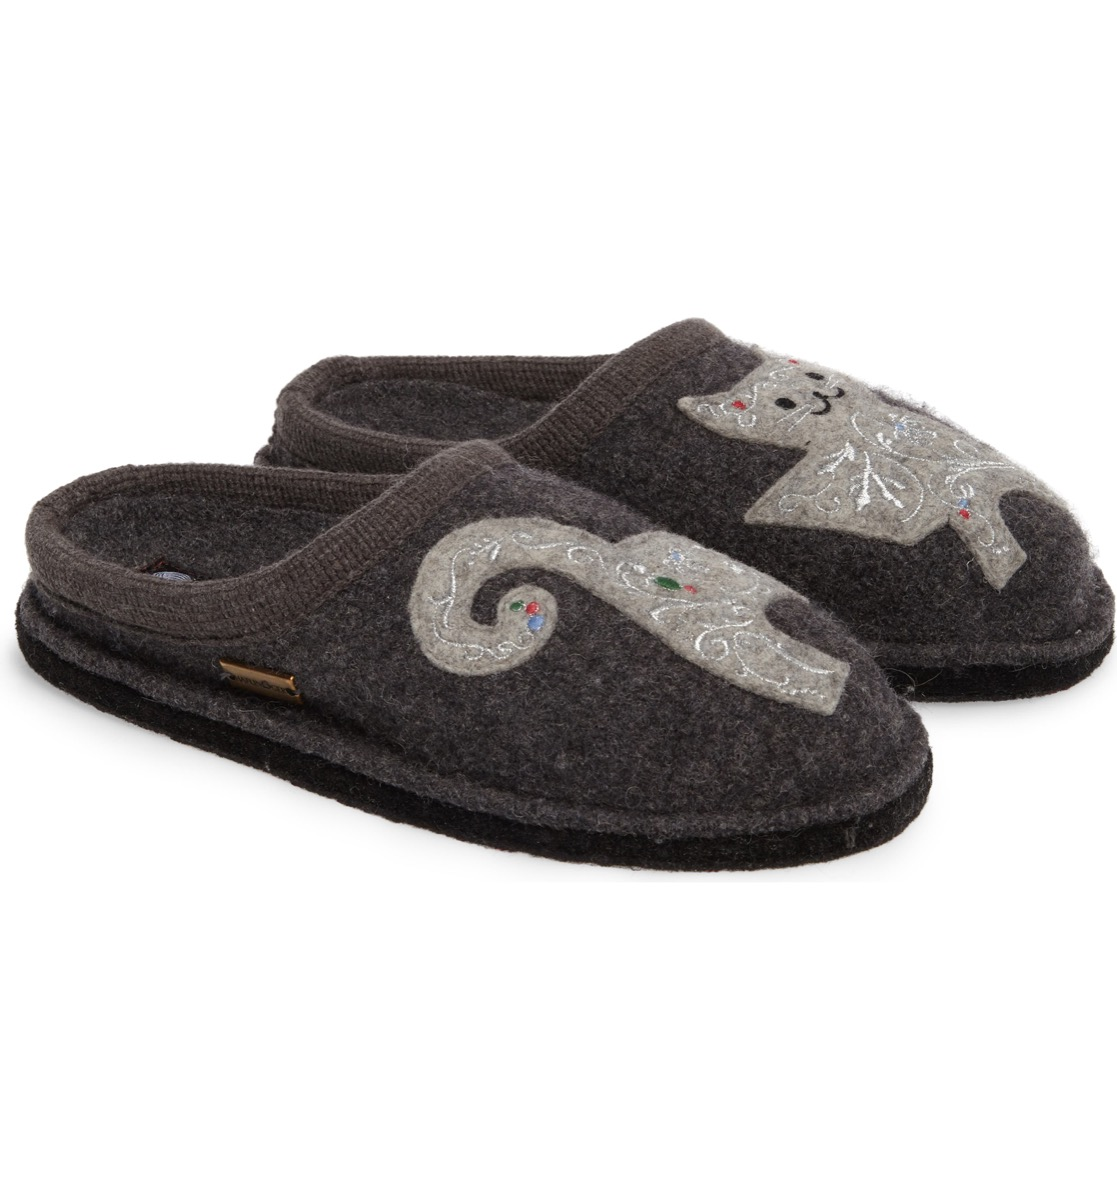 gray slippers with cats on them